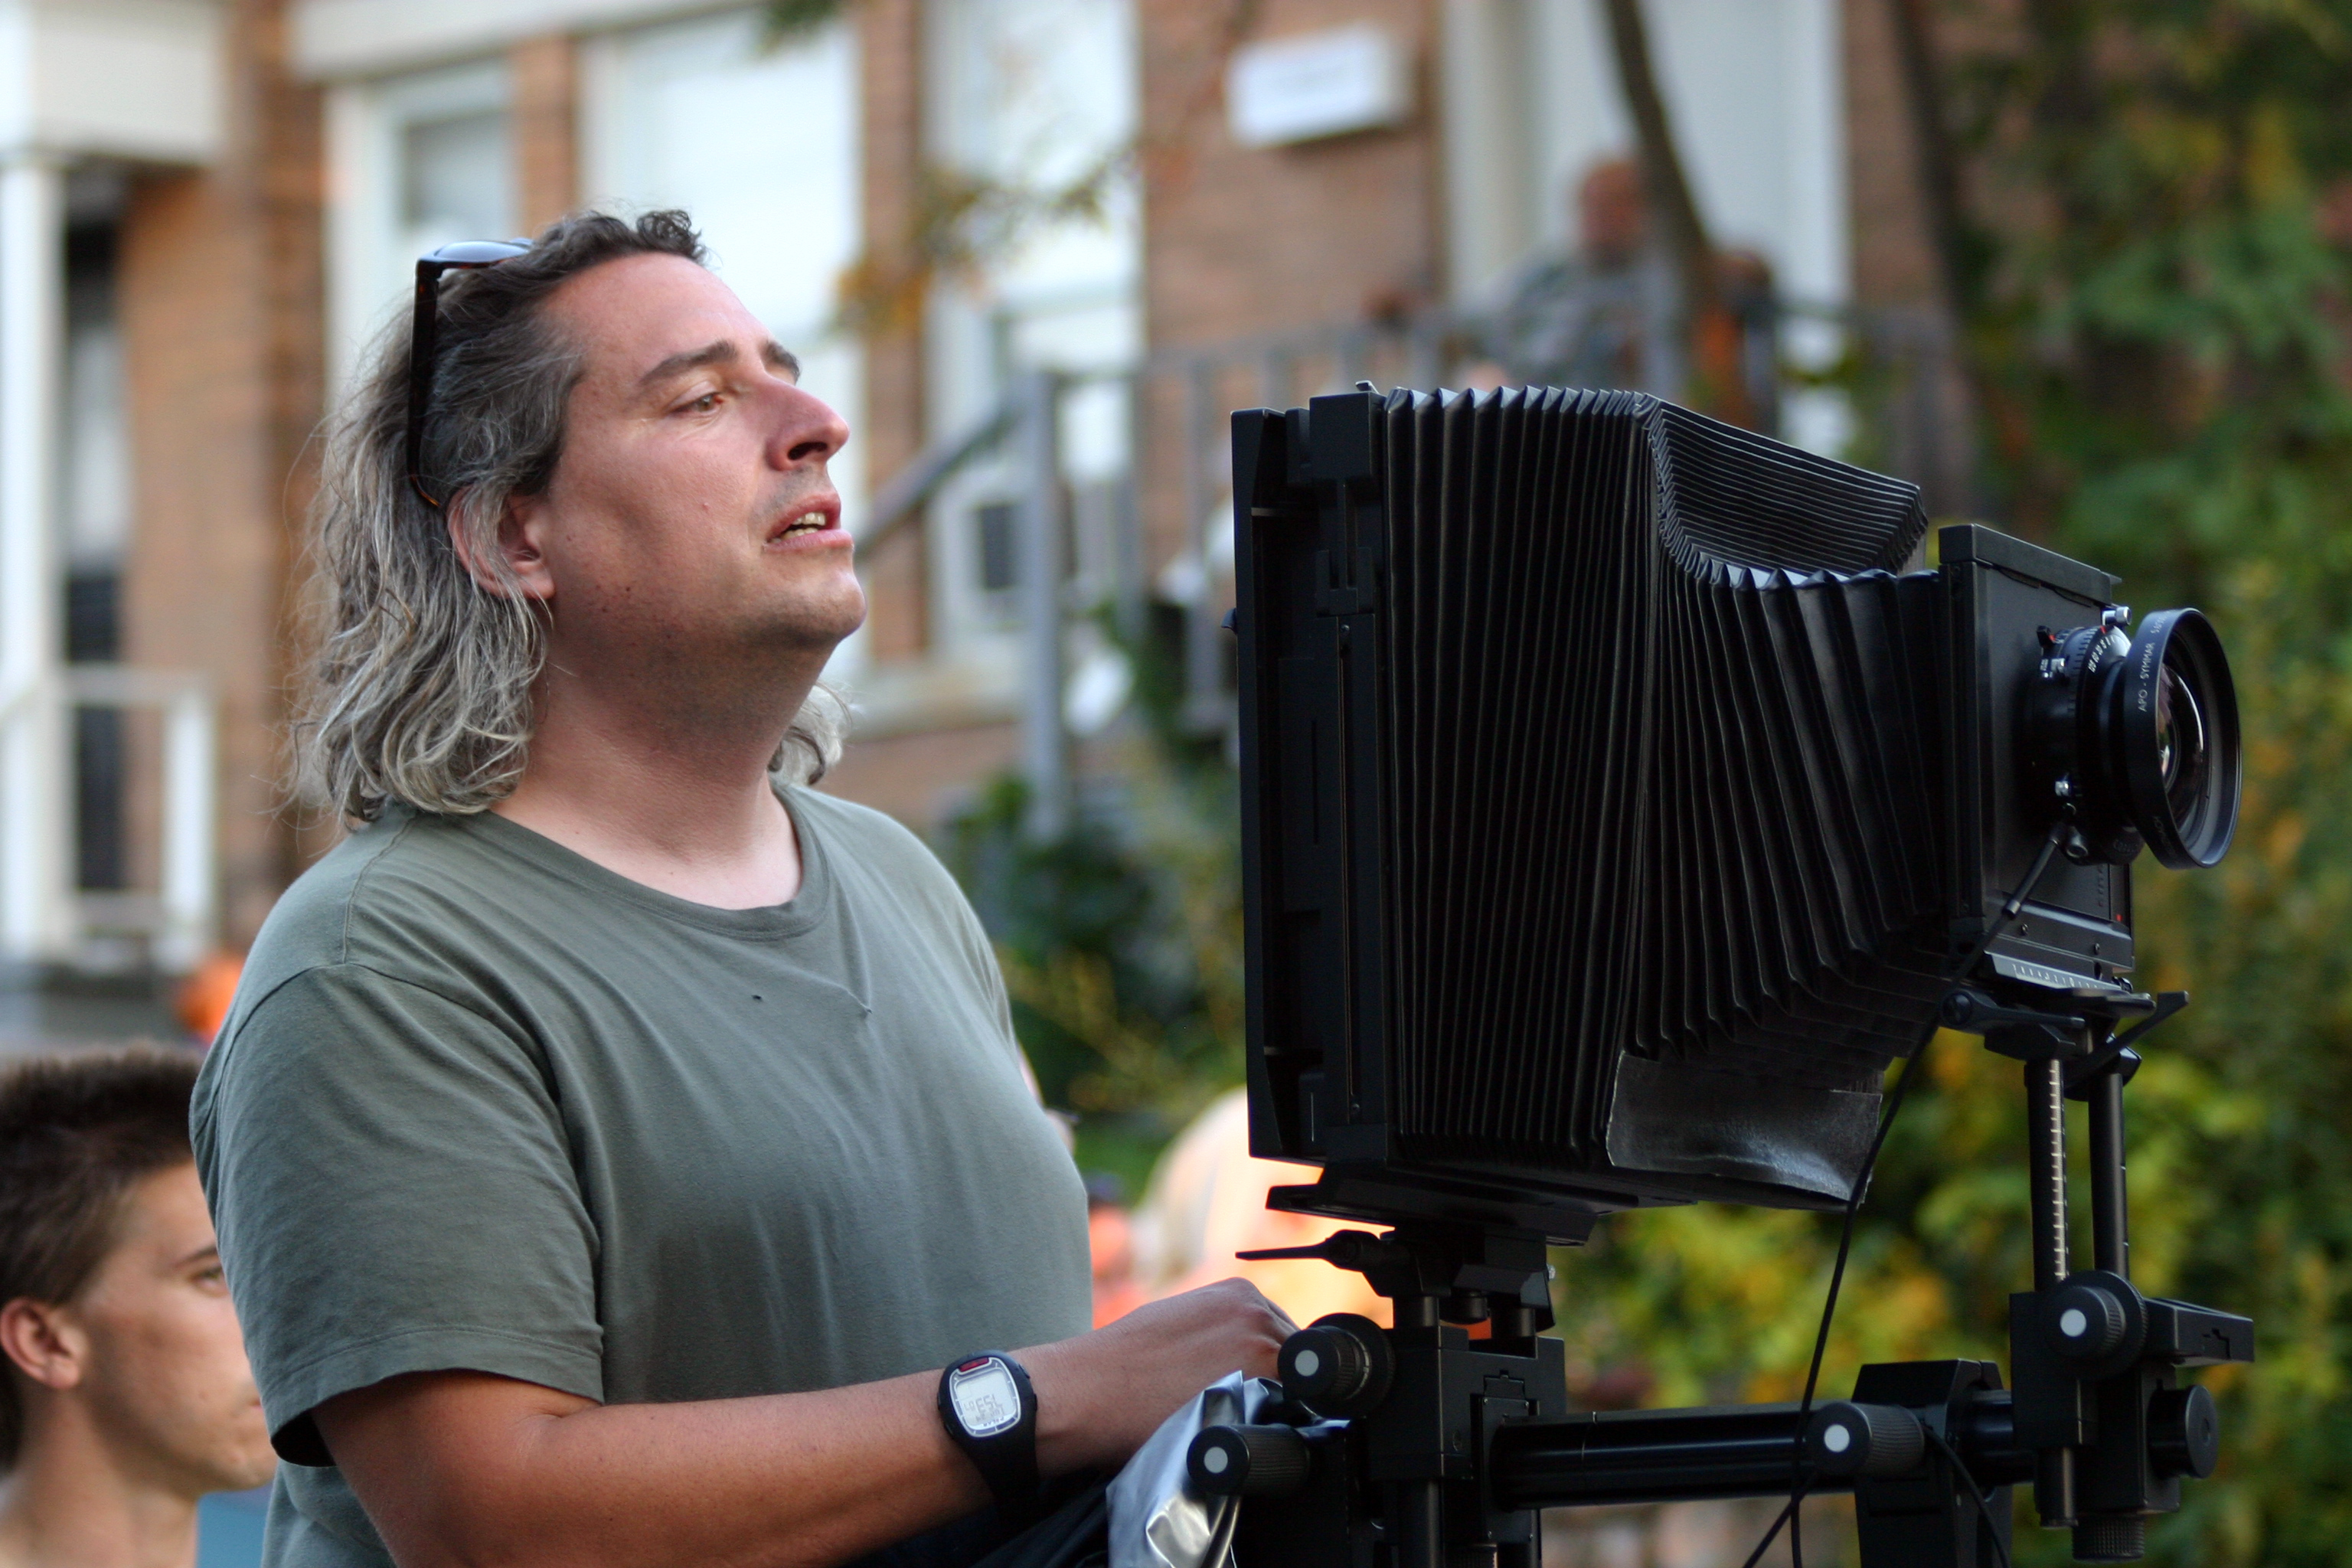 Image of Gregory Crewdson from Wikidata